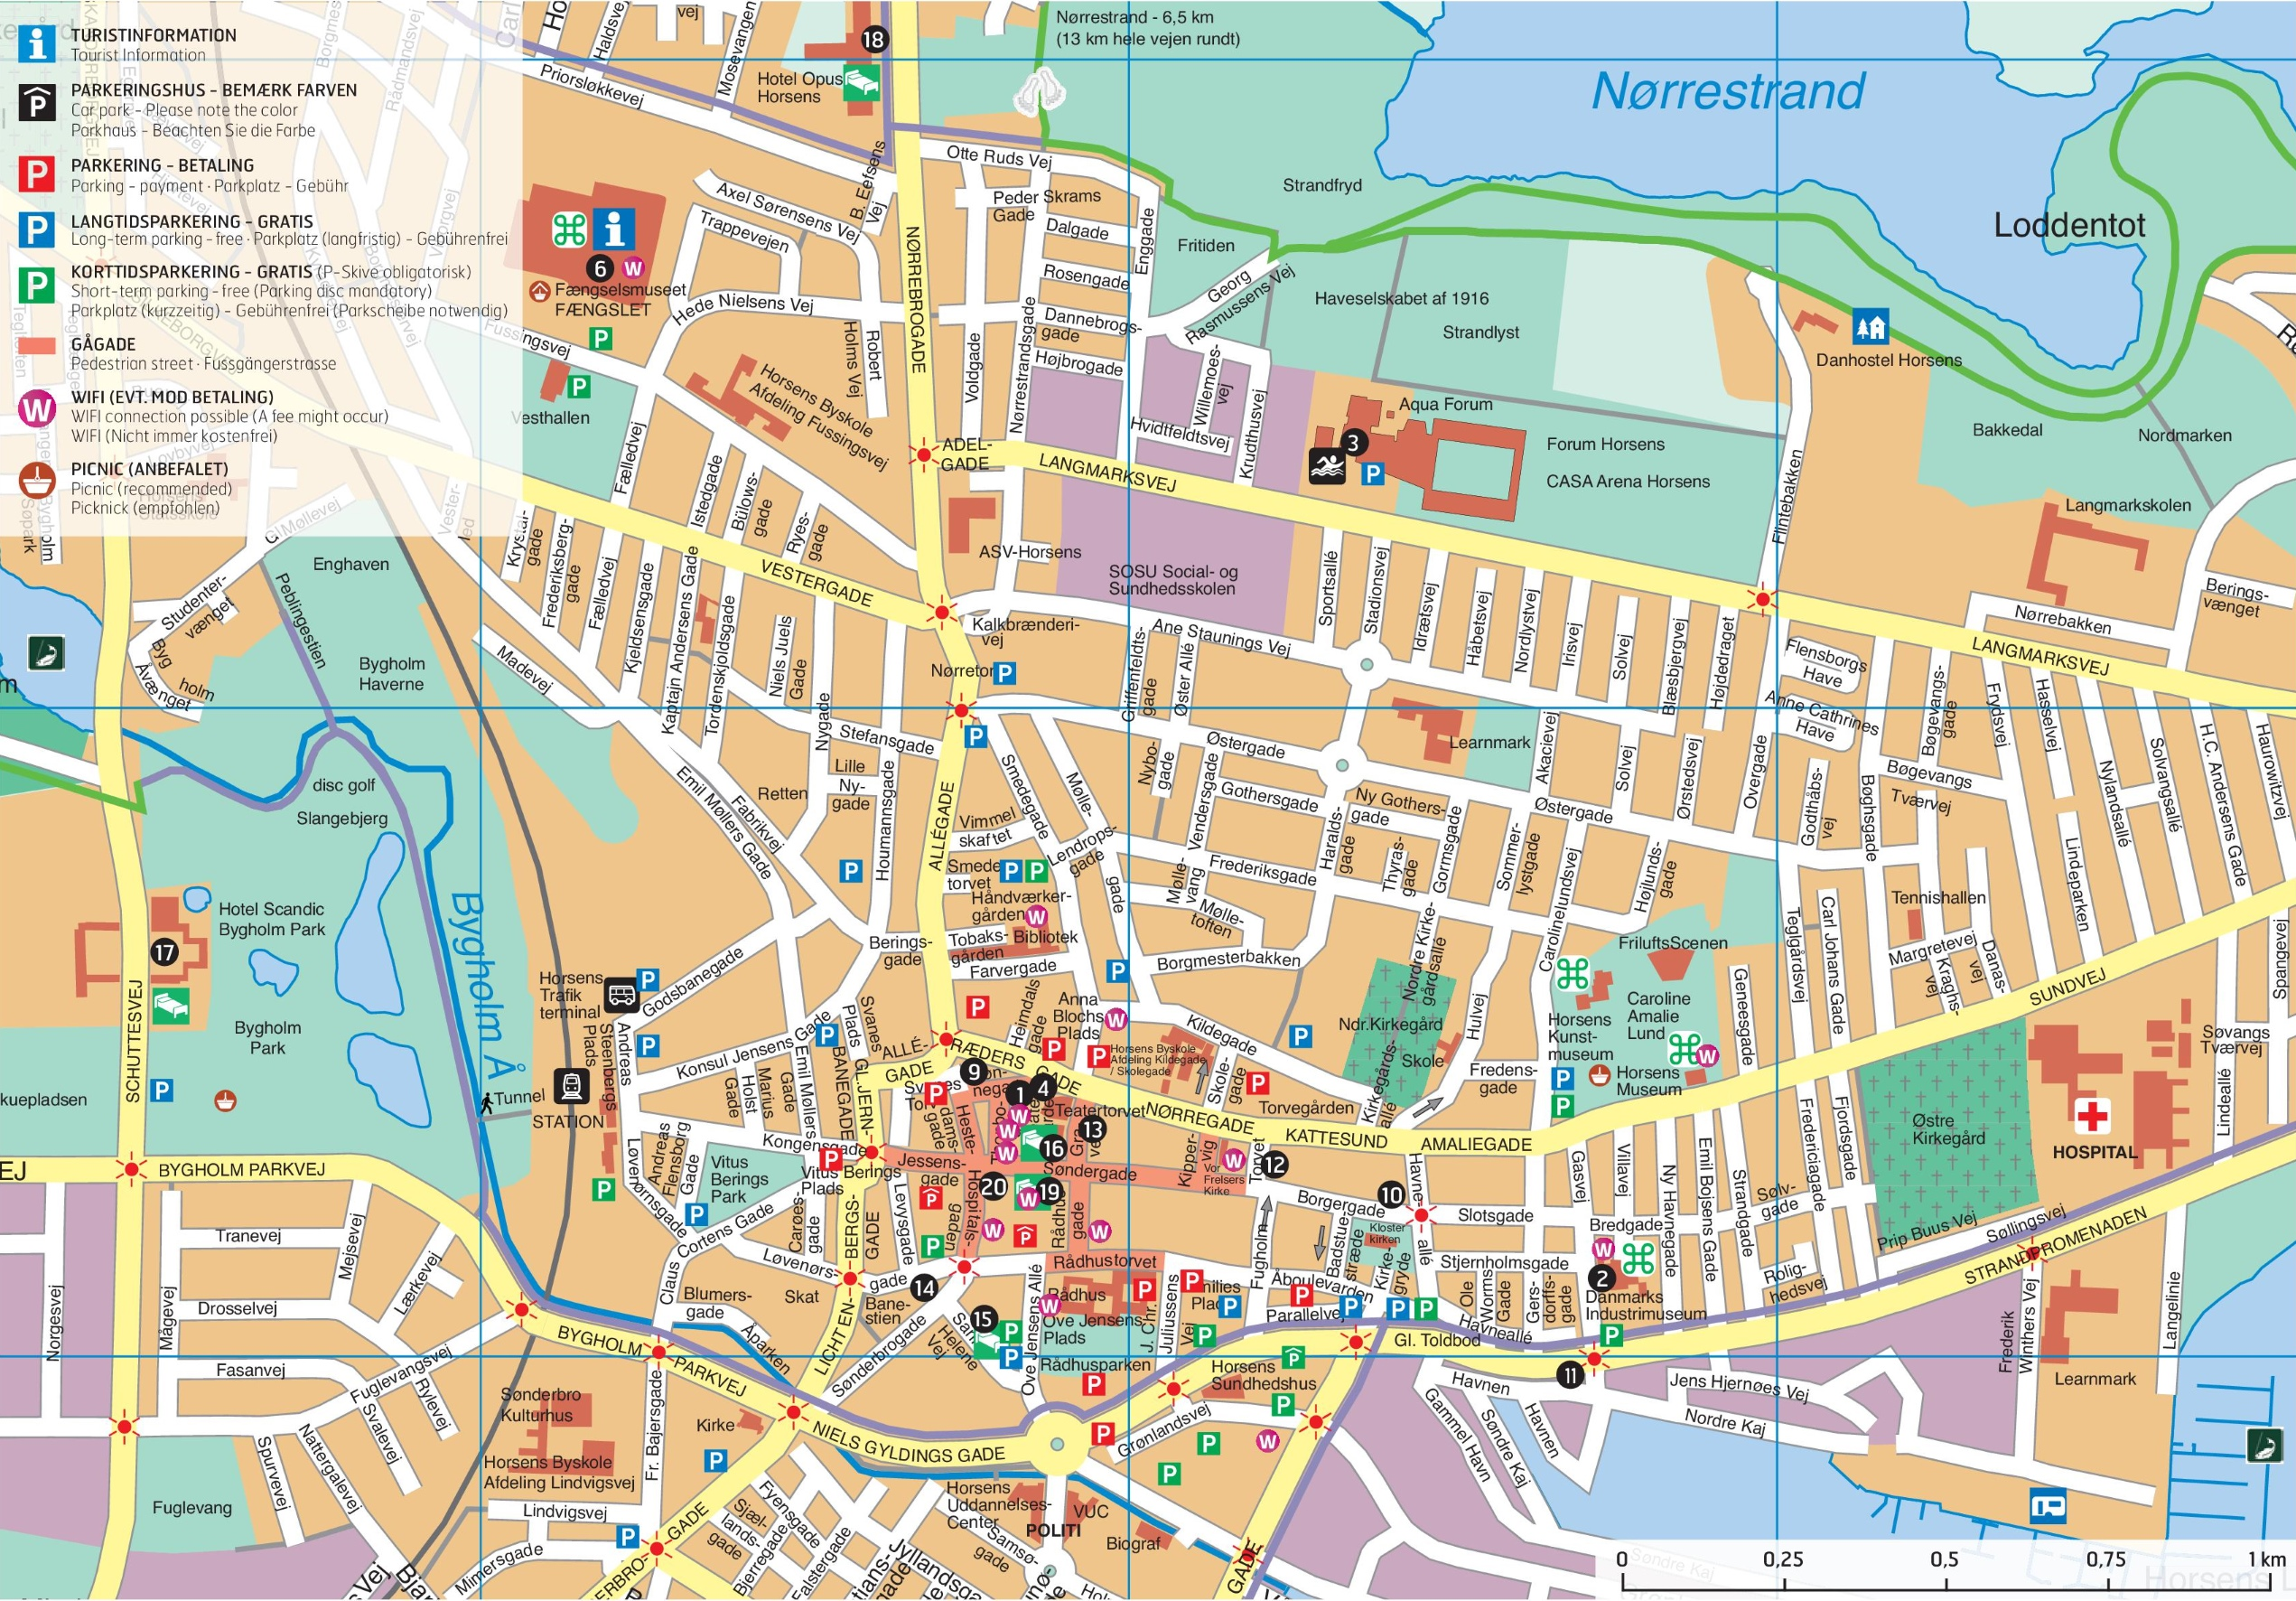 printable map of united states america with Horsens City Center Map on Horsens City Center Map together with Cardiff Location On The Uk Map further Hu further anya Tourist Map additionally San Diego Tijuana Printable Vector Street Map Full Editable Adobe Illustrator Royalty Free.